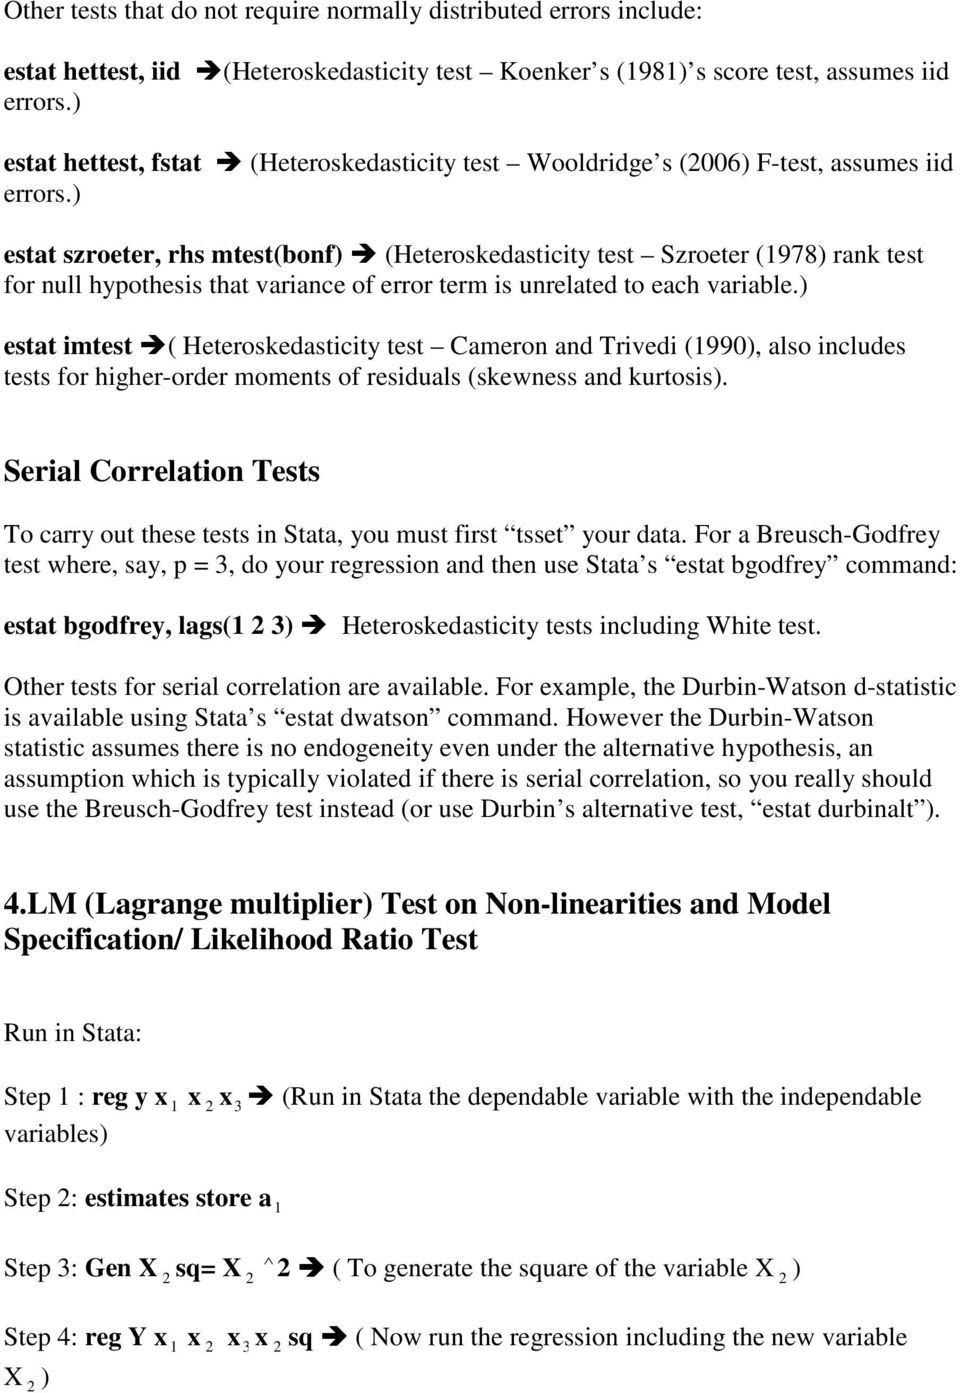 ) estat szroeter, rhs mtest(bonf) (Heteroskedasticity test Szroeter (1978) rank test for null hypothesis that variance of error term is unrelated to each variable.